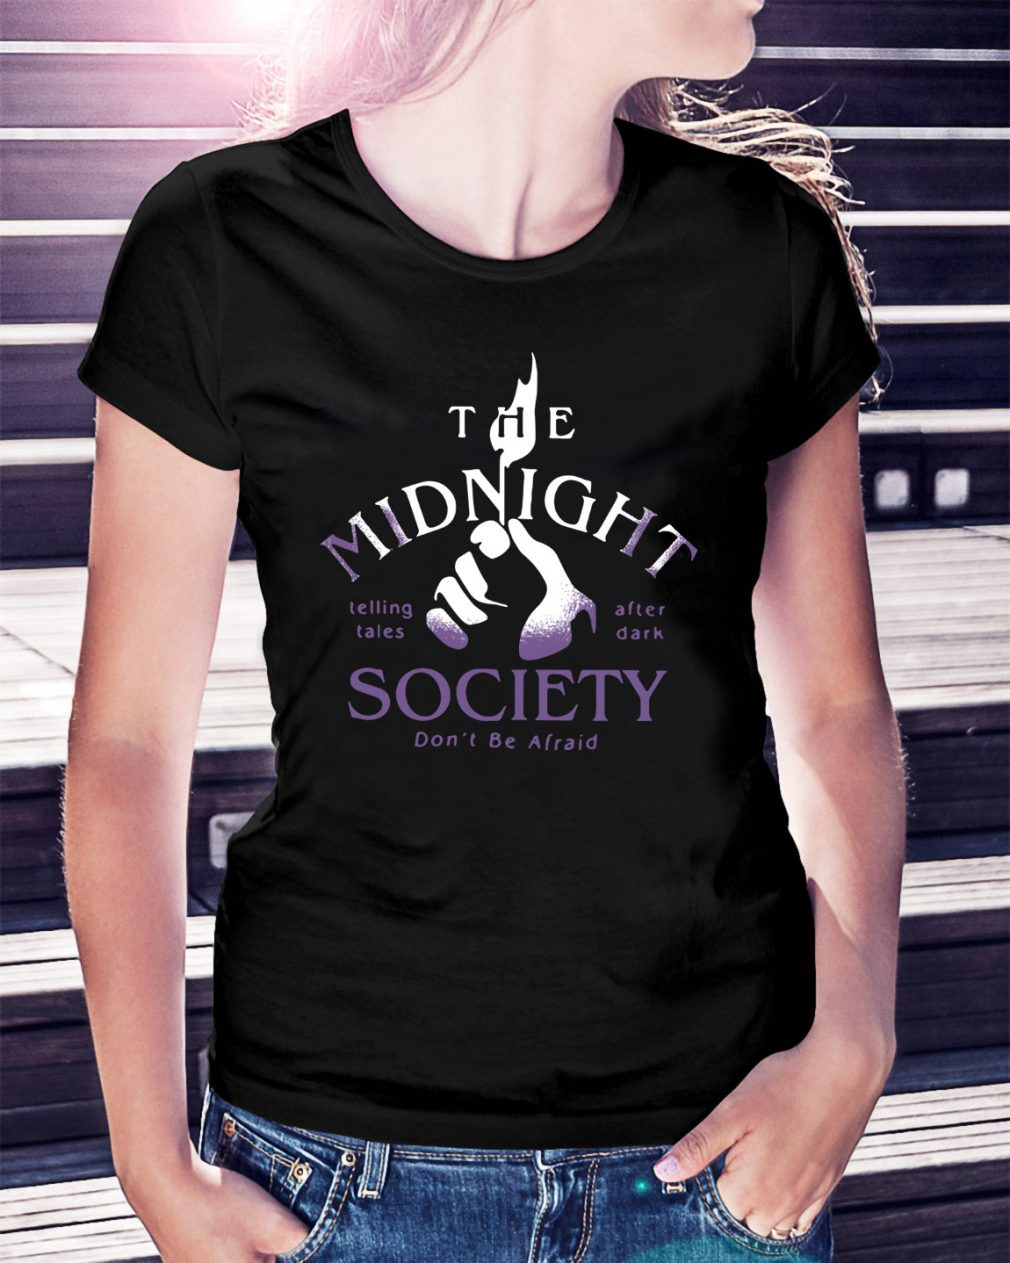 The midnight telling tales after dark society don't be afraid Ladies Tee